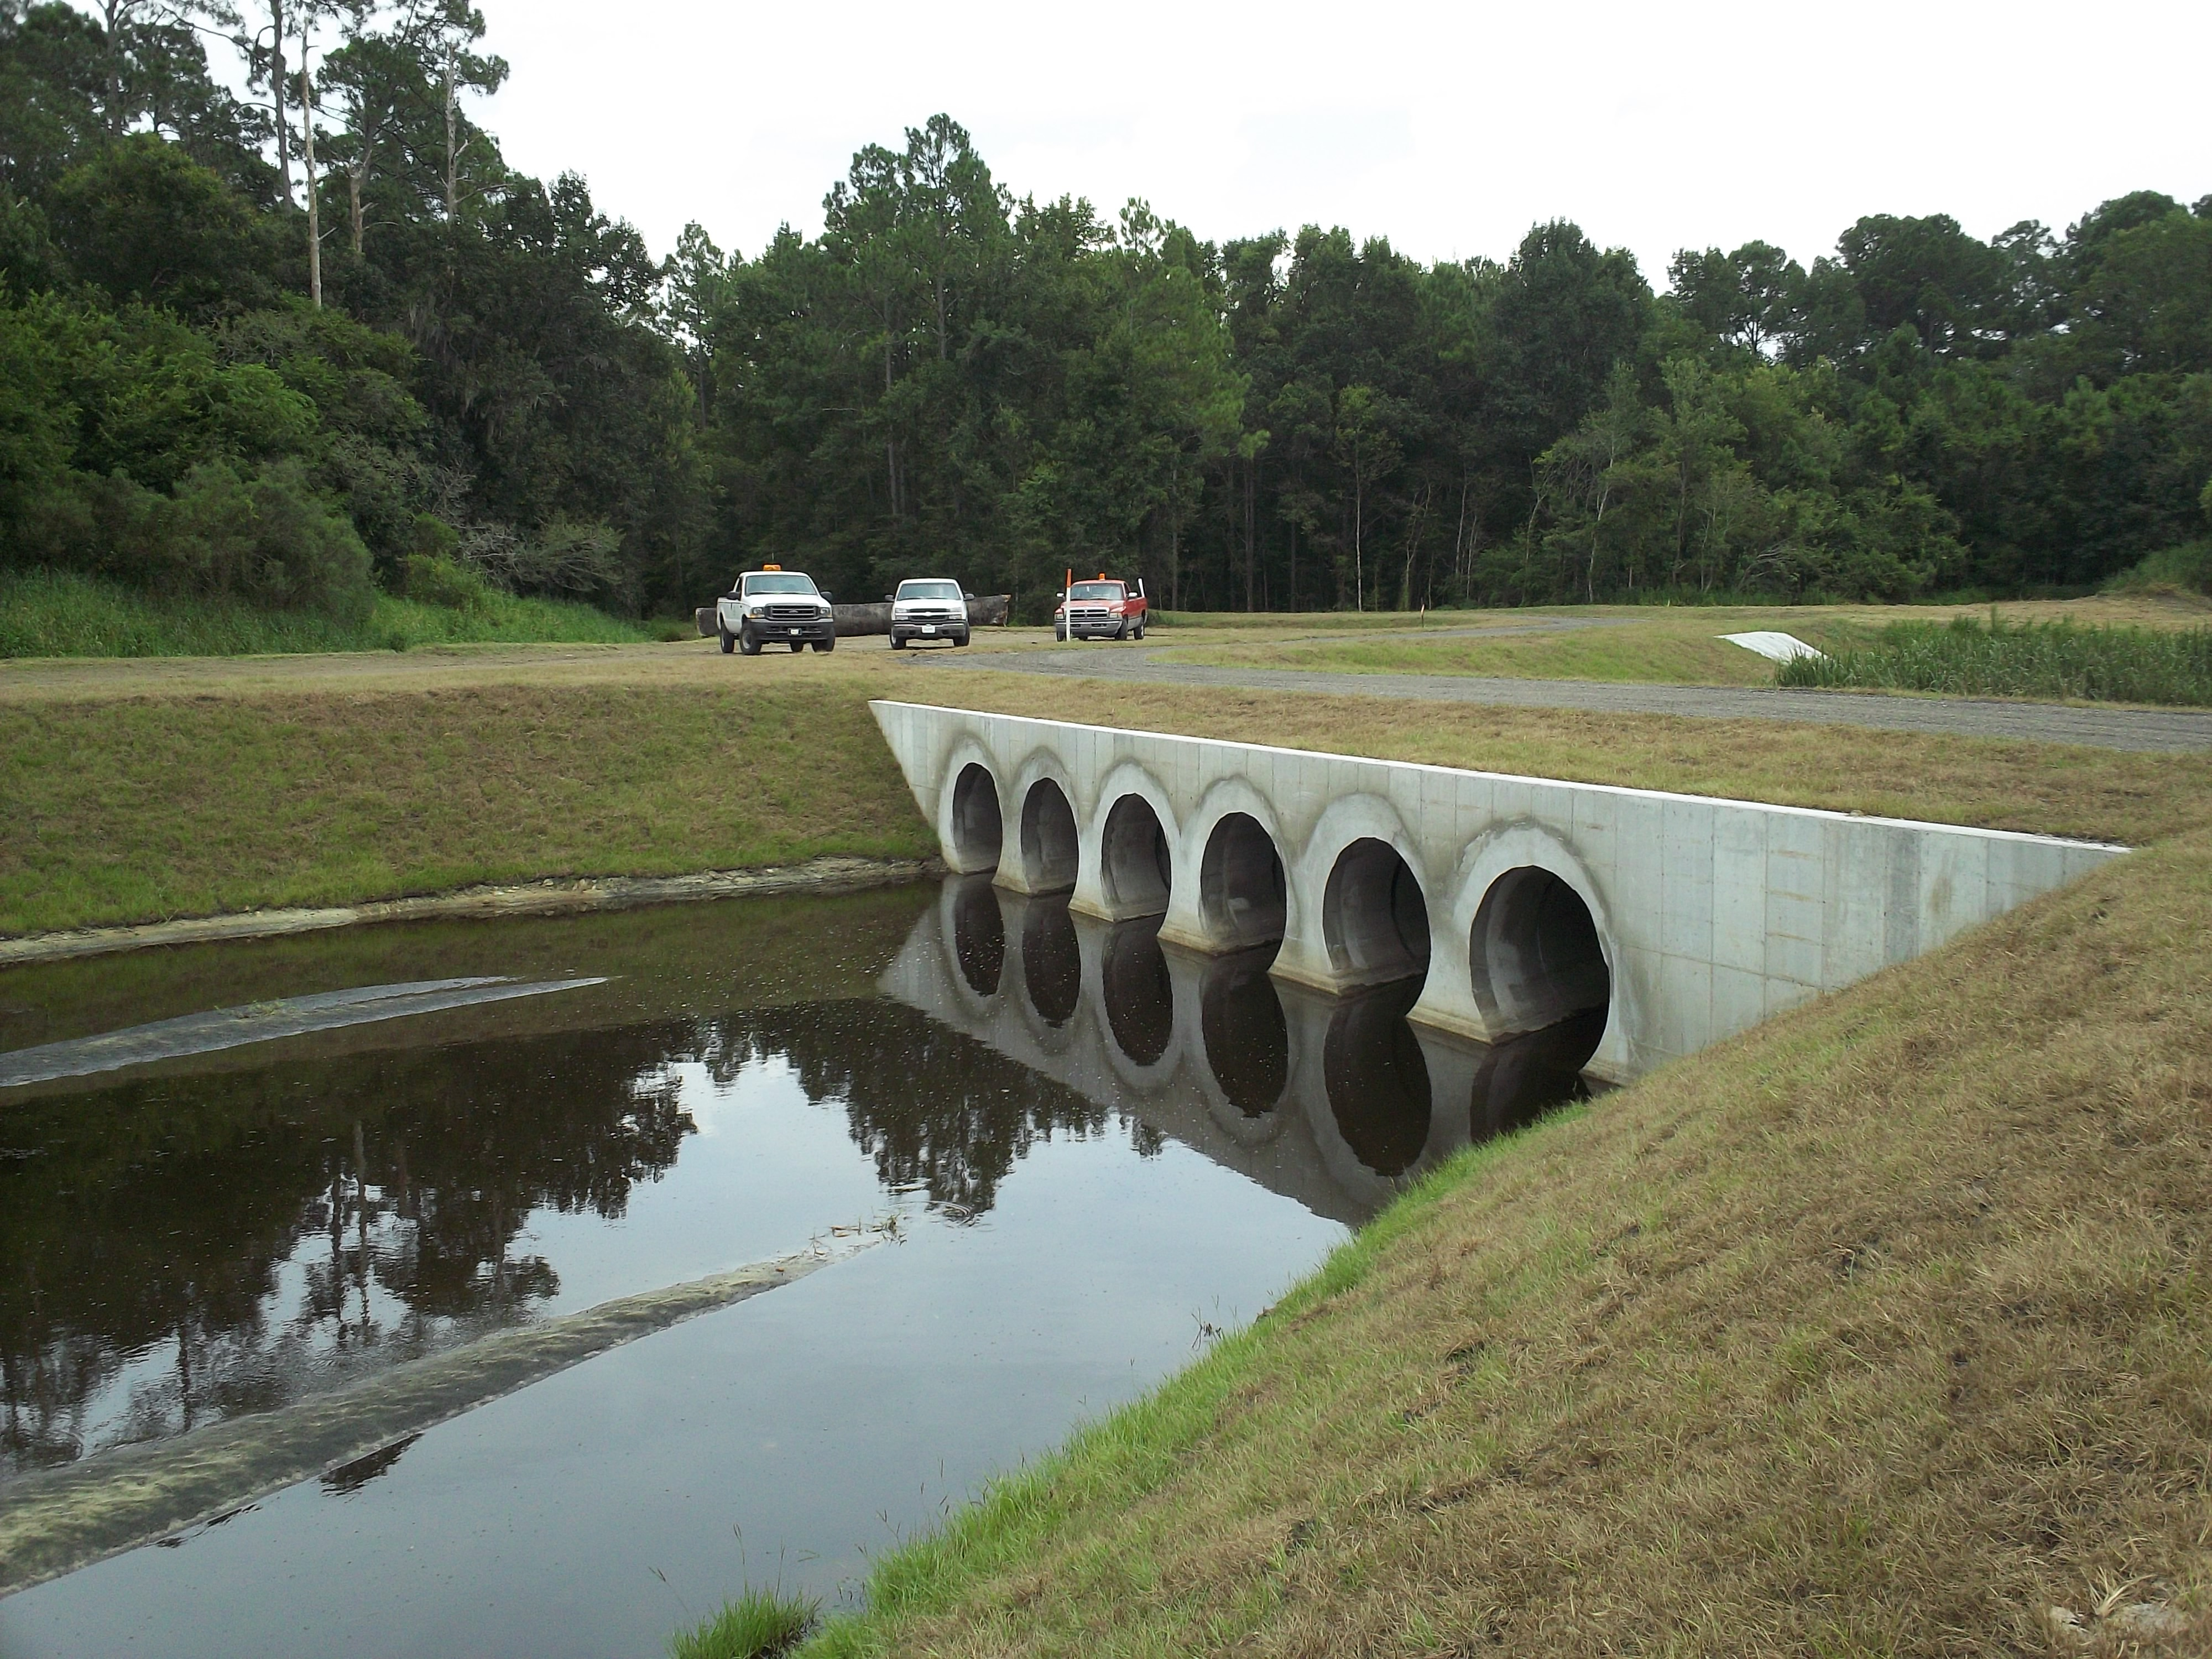 The completed culvert of the Ashley Outfall with water flowing underneath and three trucks in the background